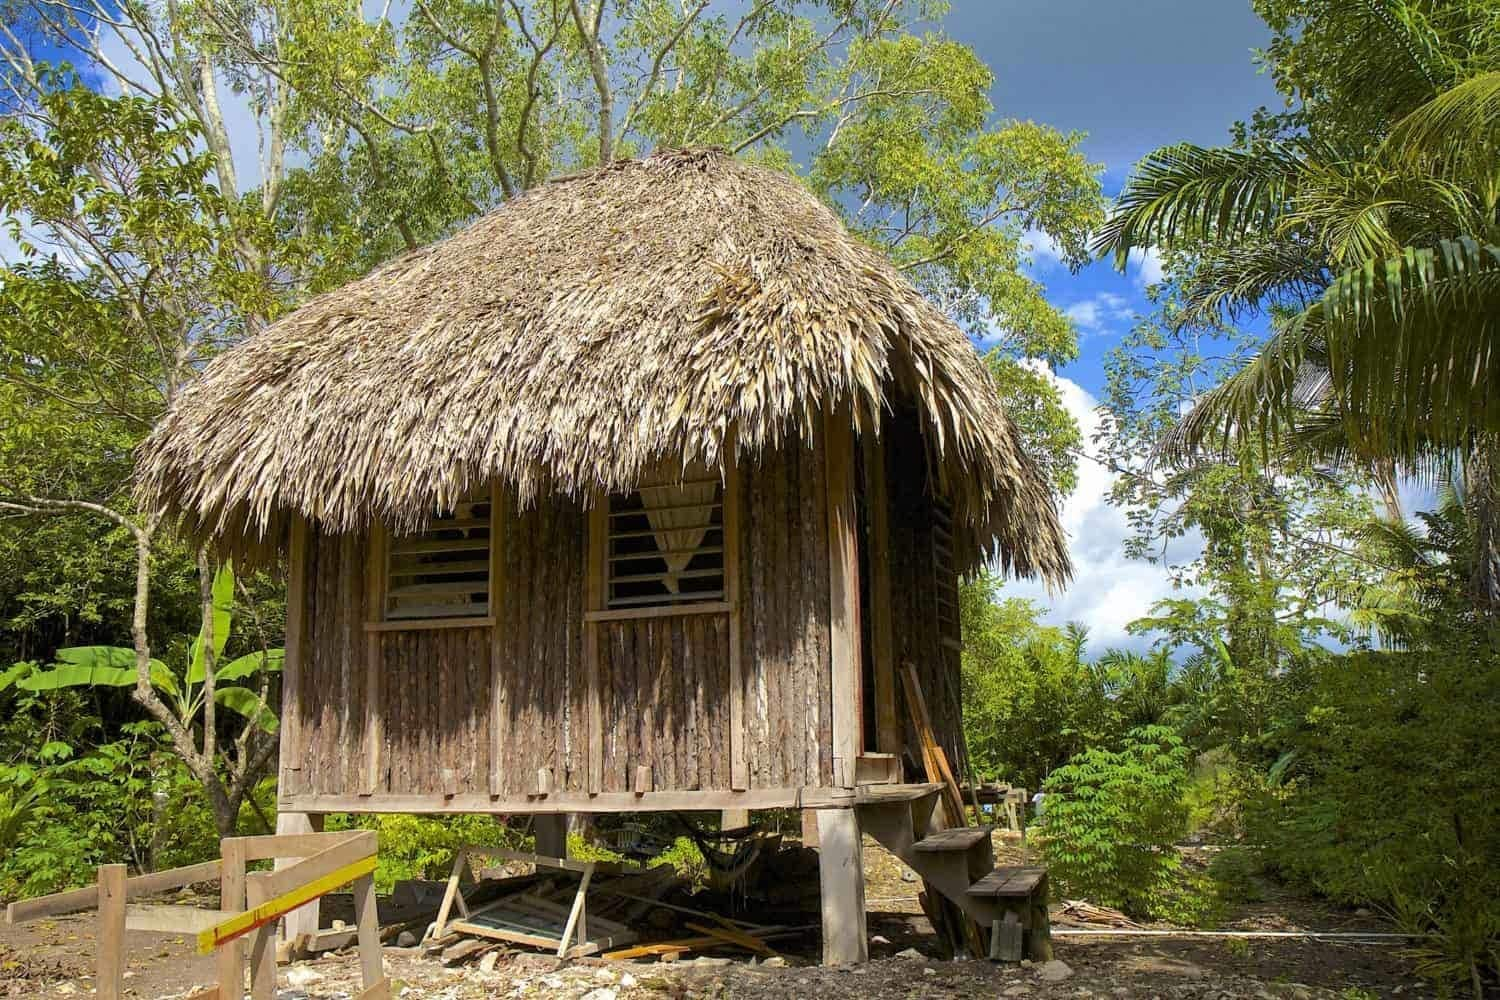 Traditional hut on Mayan site of Altun Ha in Belize, CaribbeanTraditional hut on Mayan site of Altun Ha in Belize, Caribbean